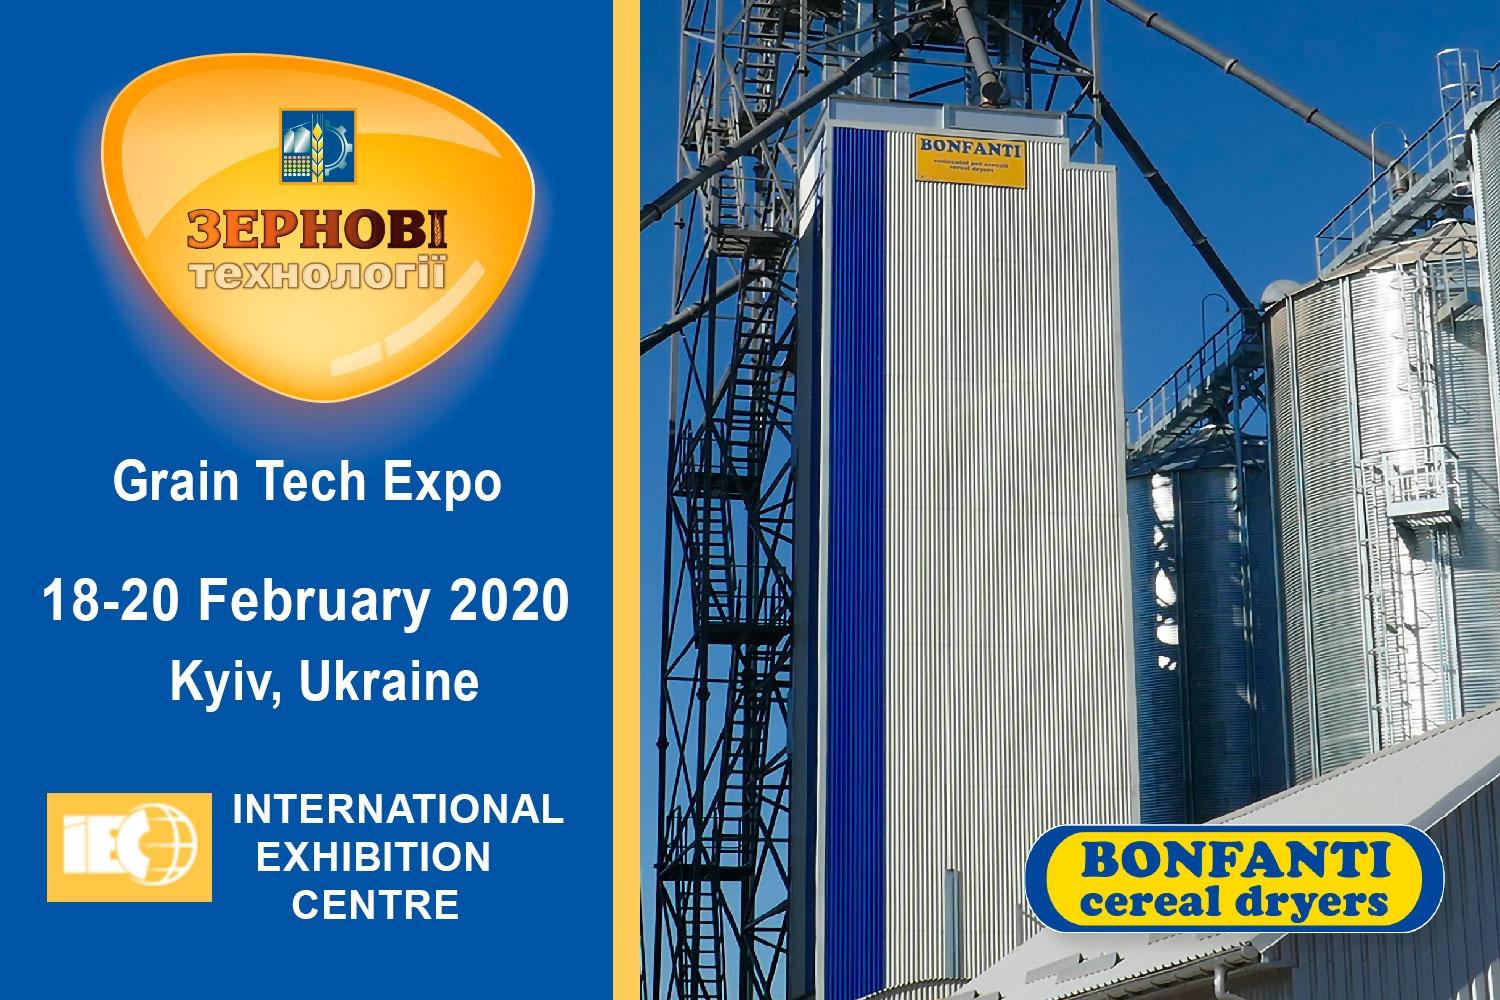 Grain Tech Expo 18-20 February 2020